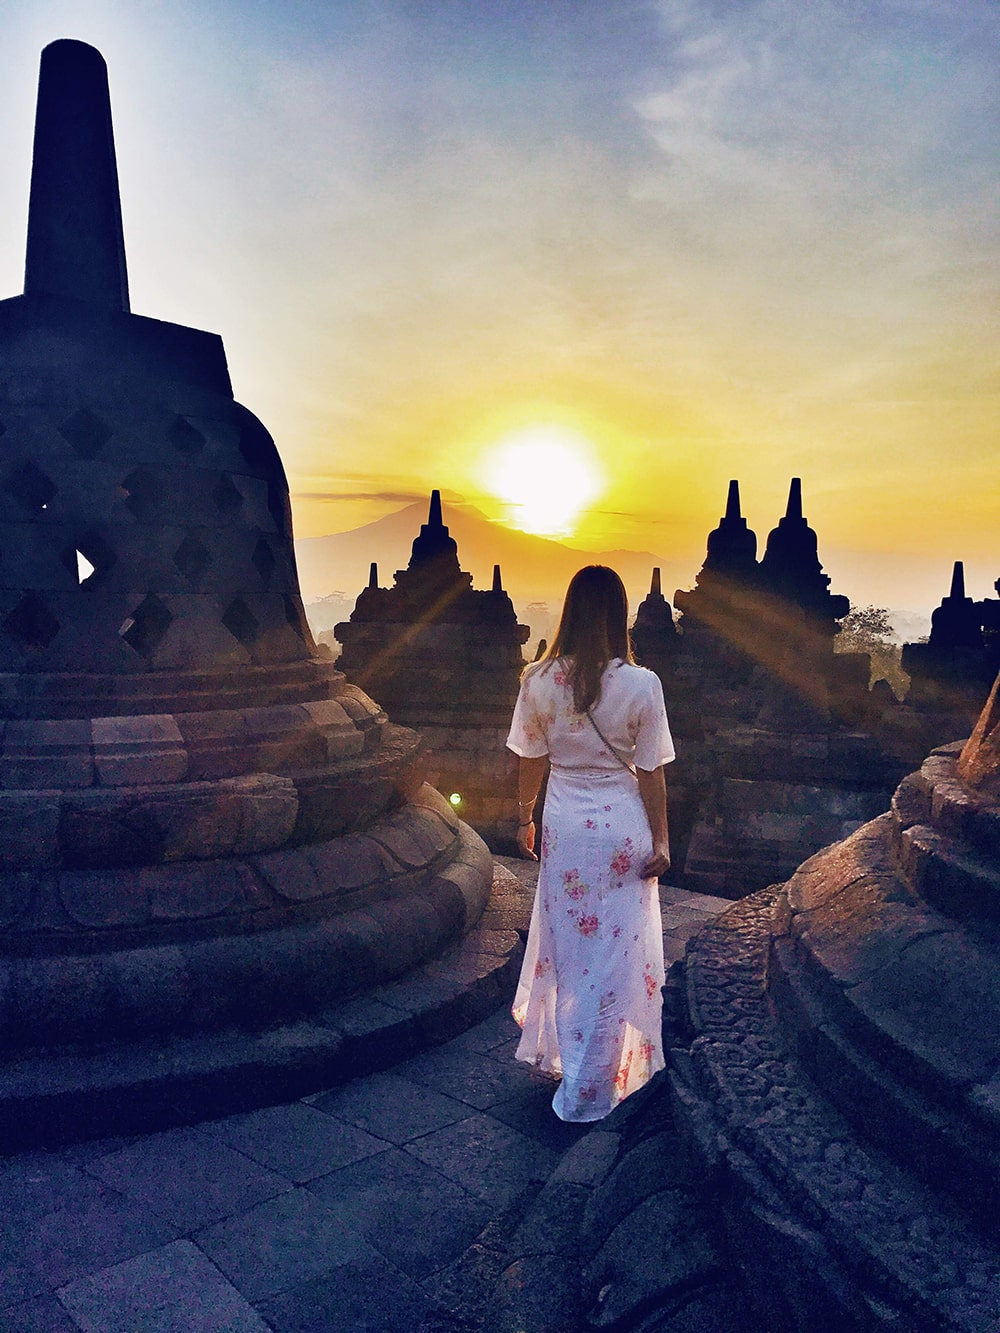 Crystal Phuong- What to do in Yogyakarta- Sunrise in Borobudur temple 2